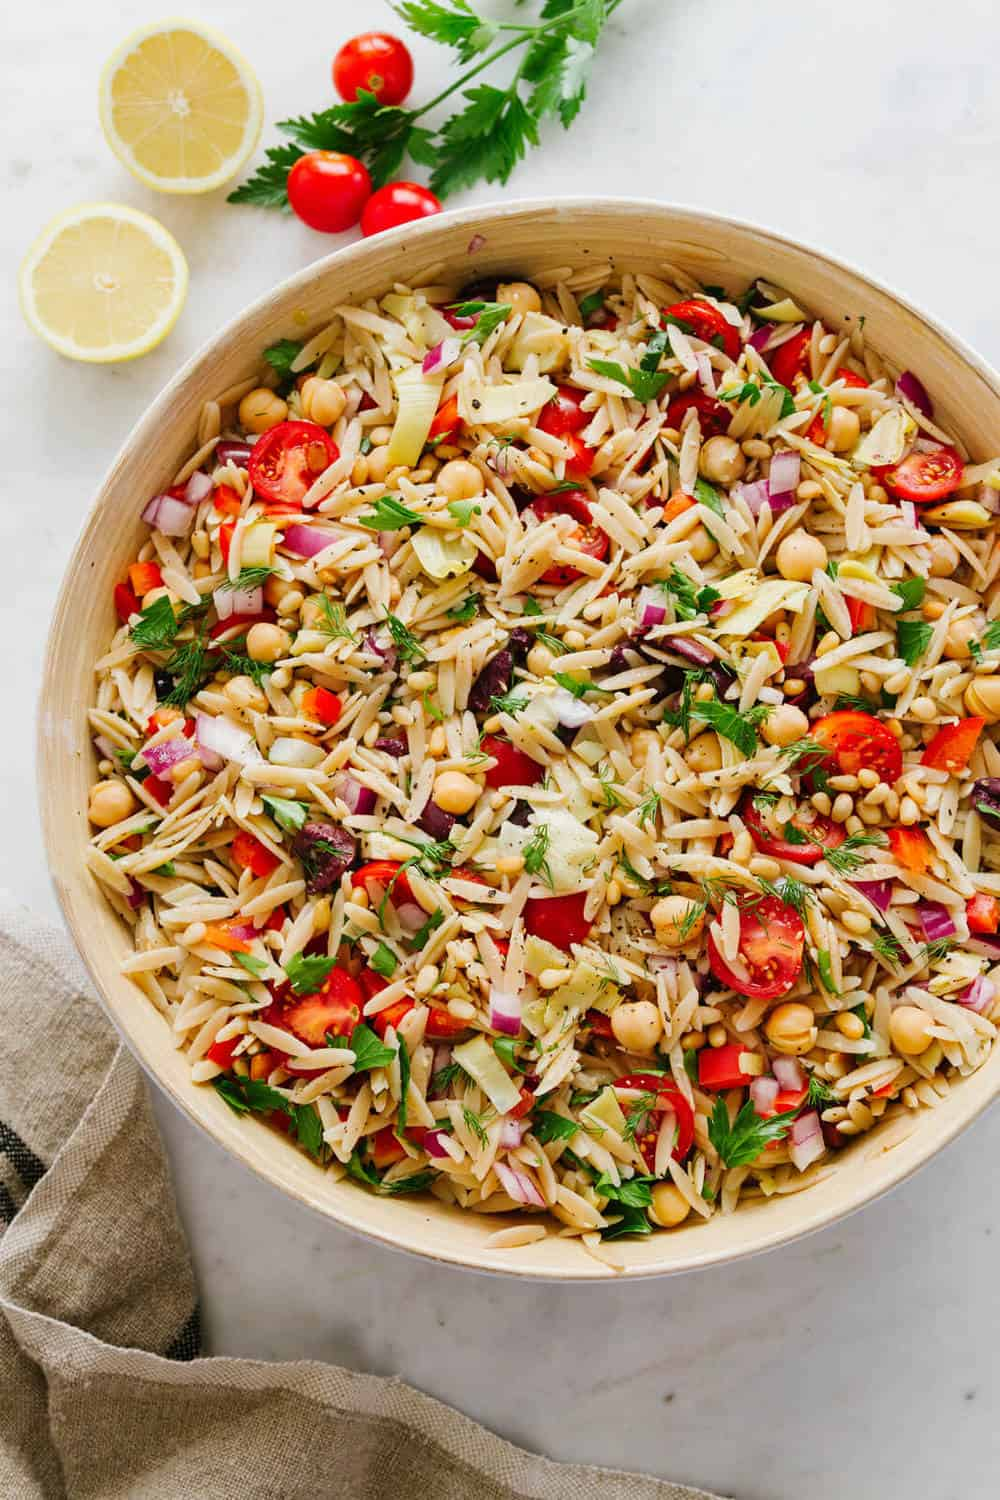 greek orzo salad in large wooden serving bowl